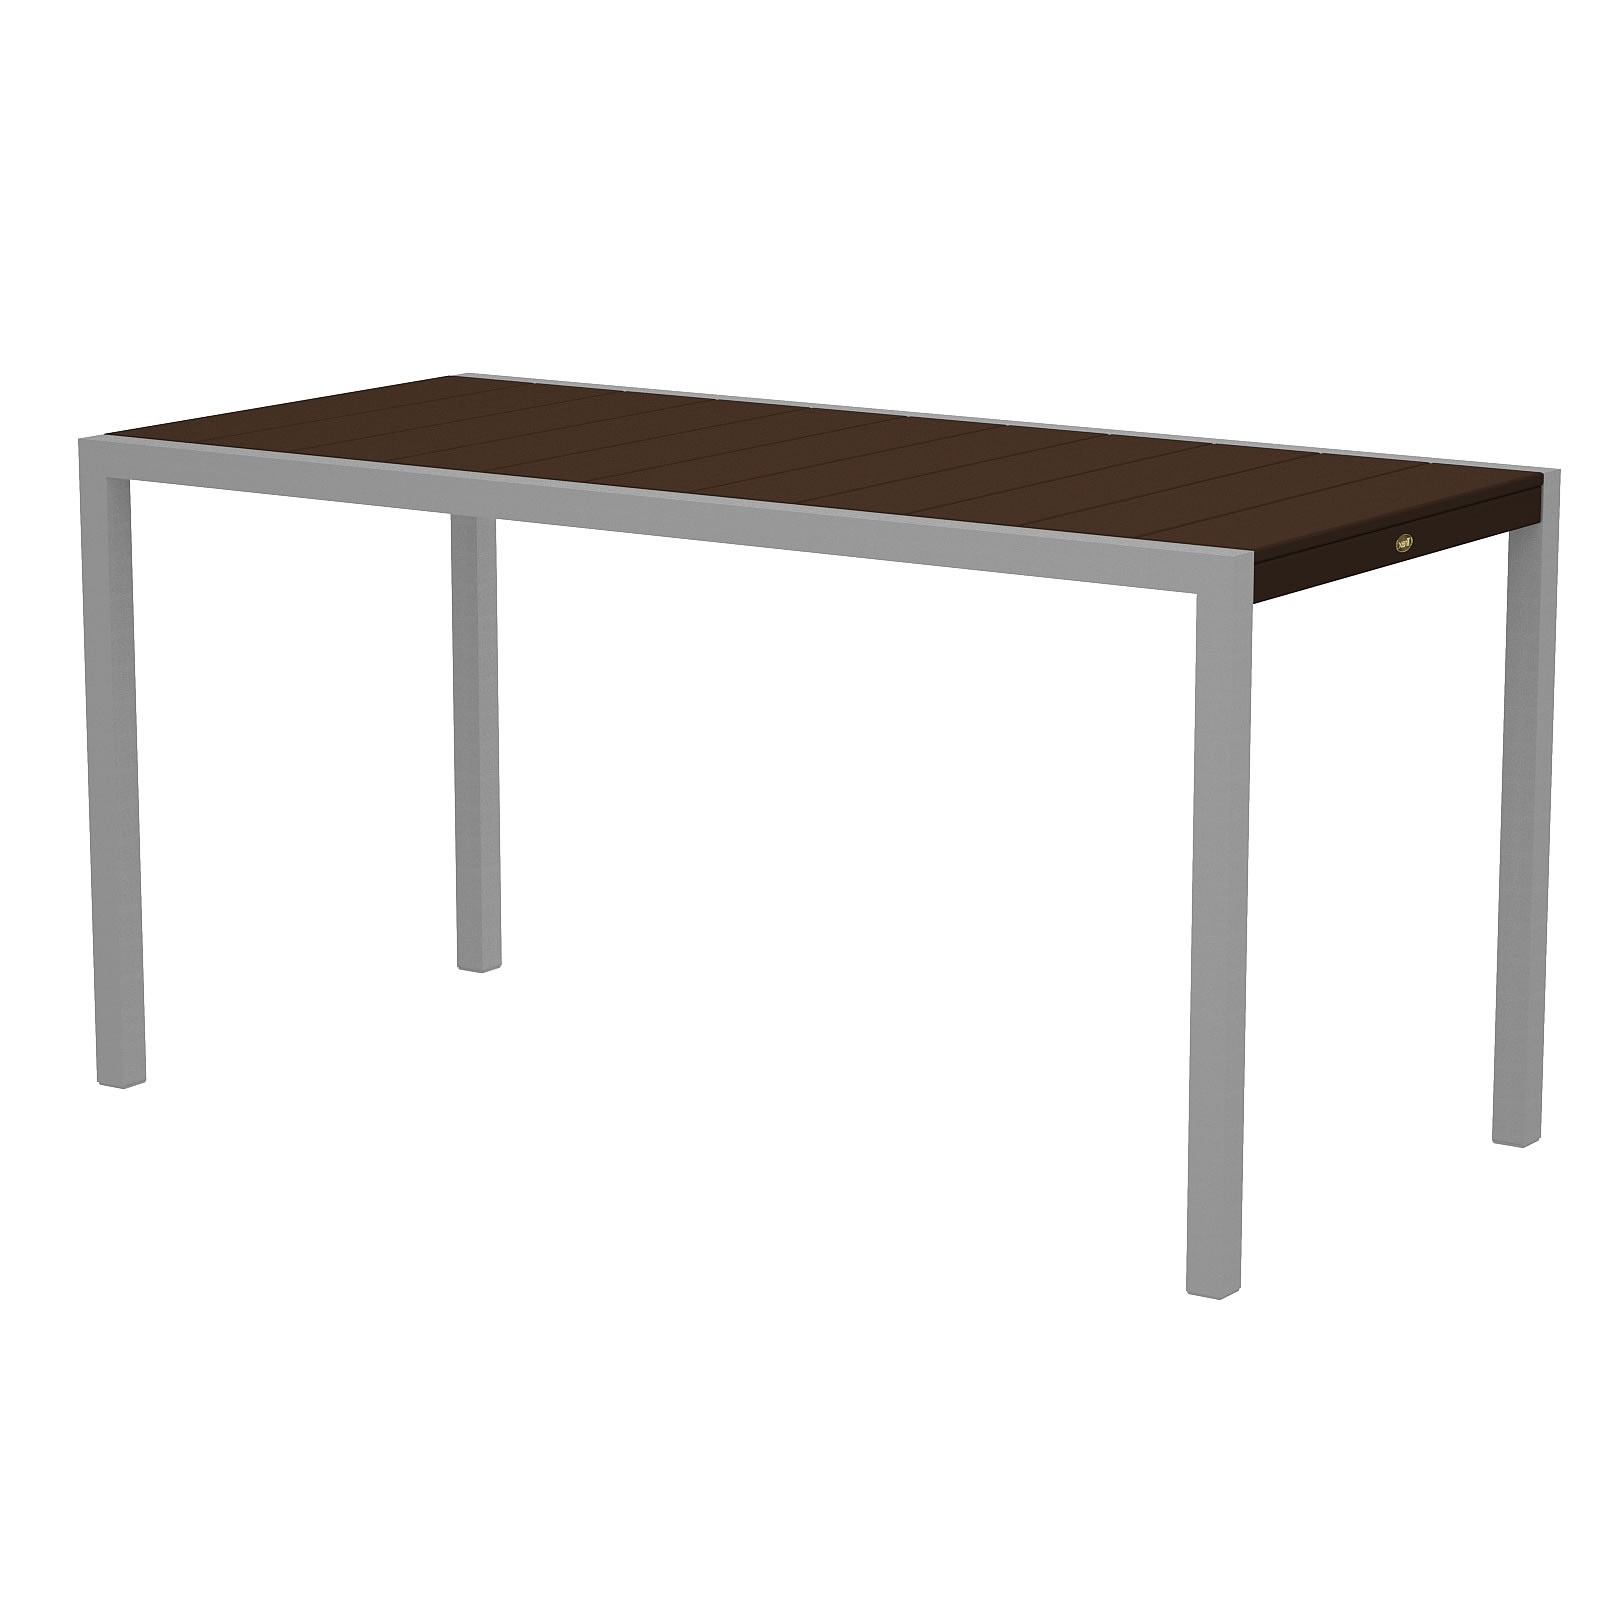 Trex® Outdoor Furniture Surf City 36 x 73 in Bar Table